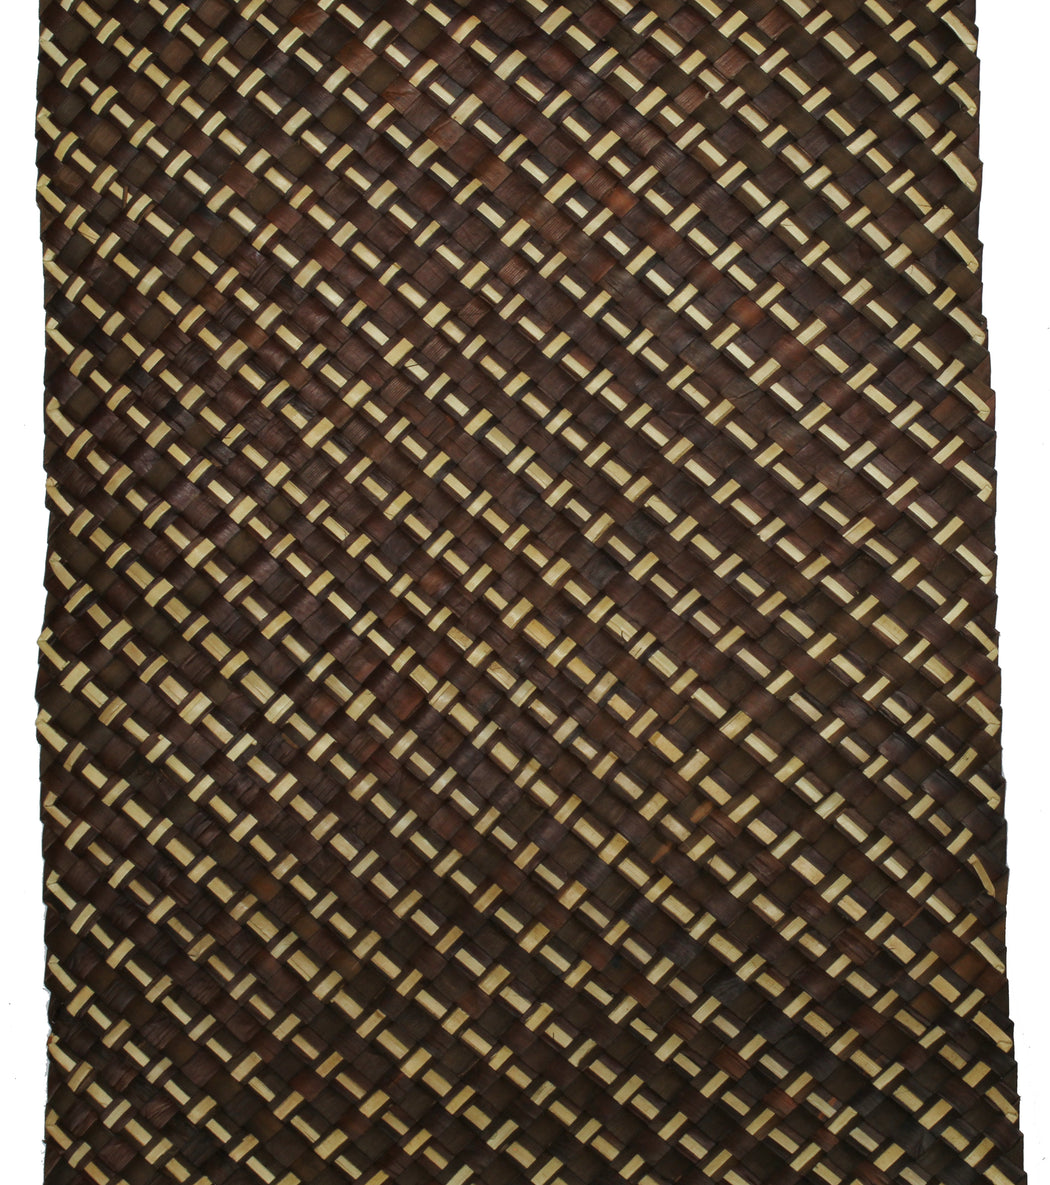 Table Runner Handwoven from Pandan Straw - Brown/Natural